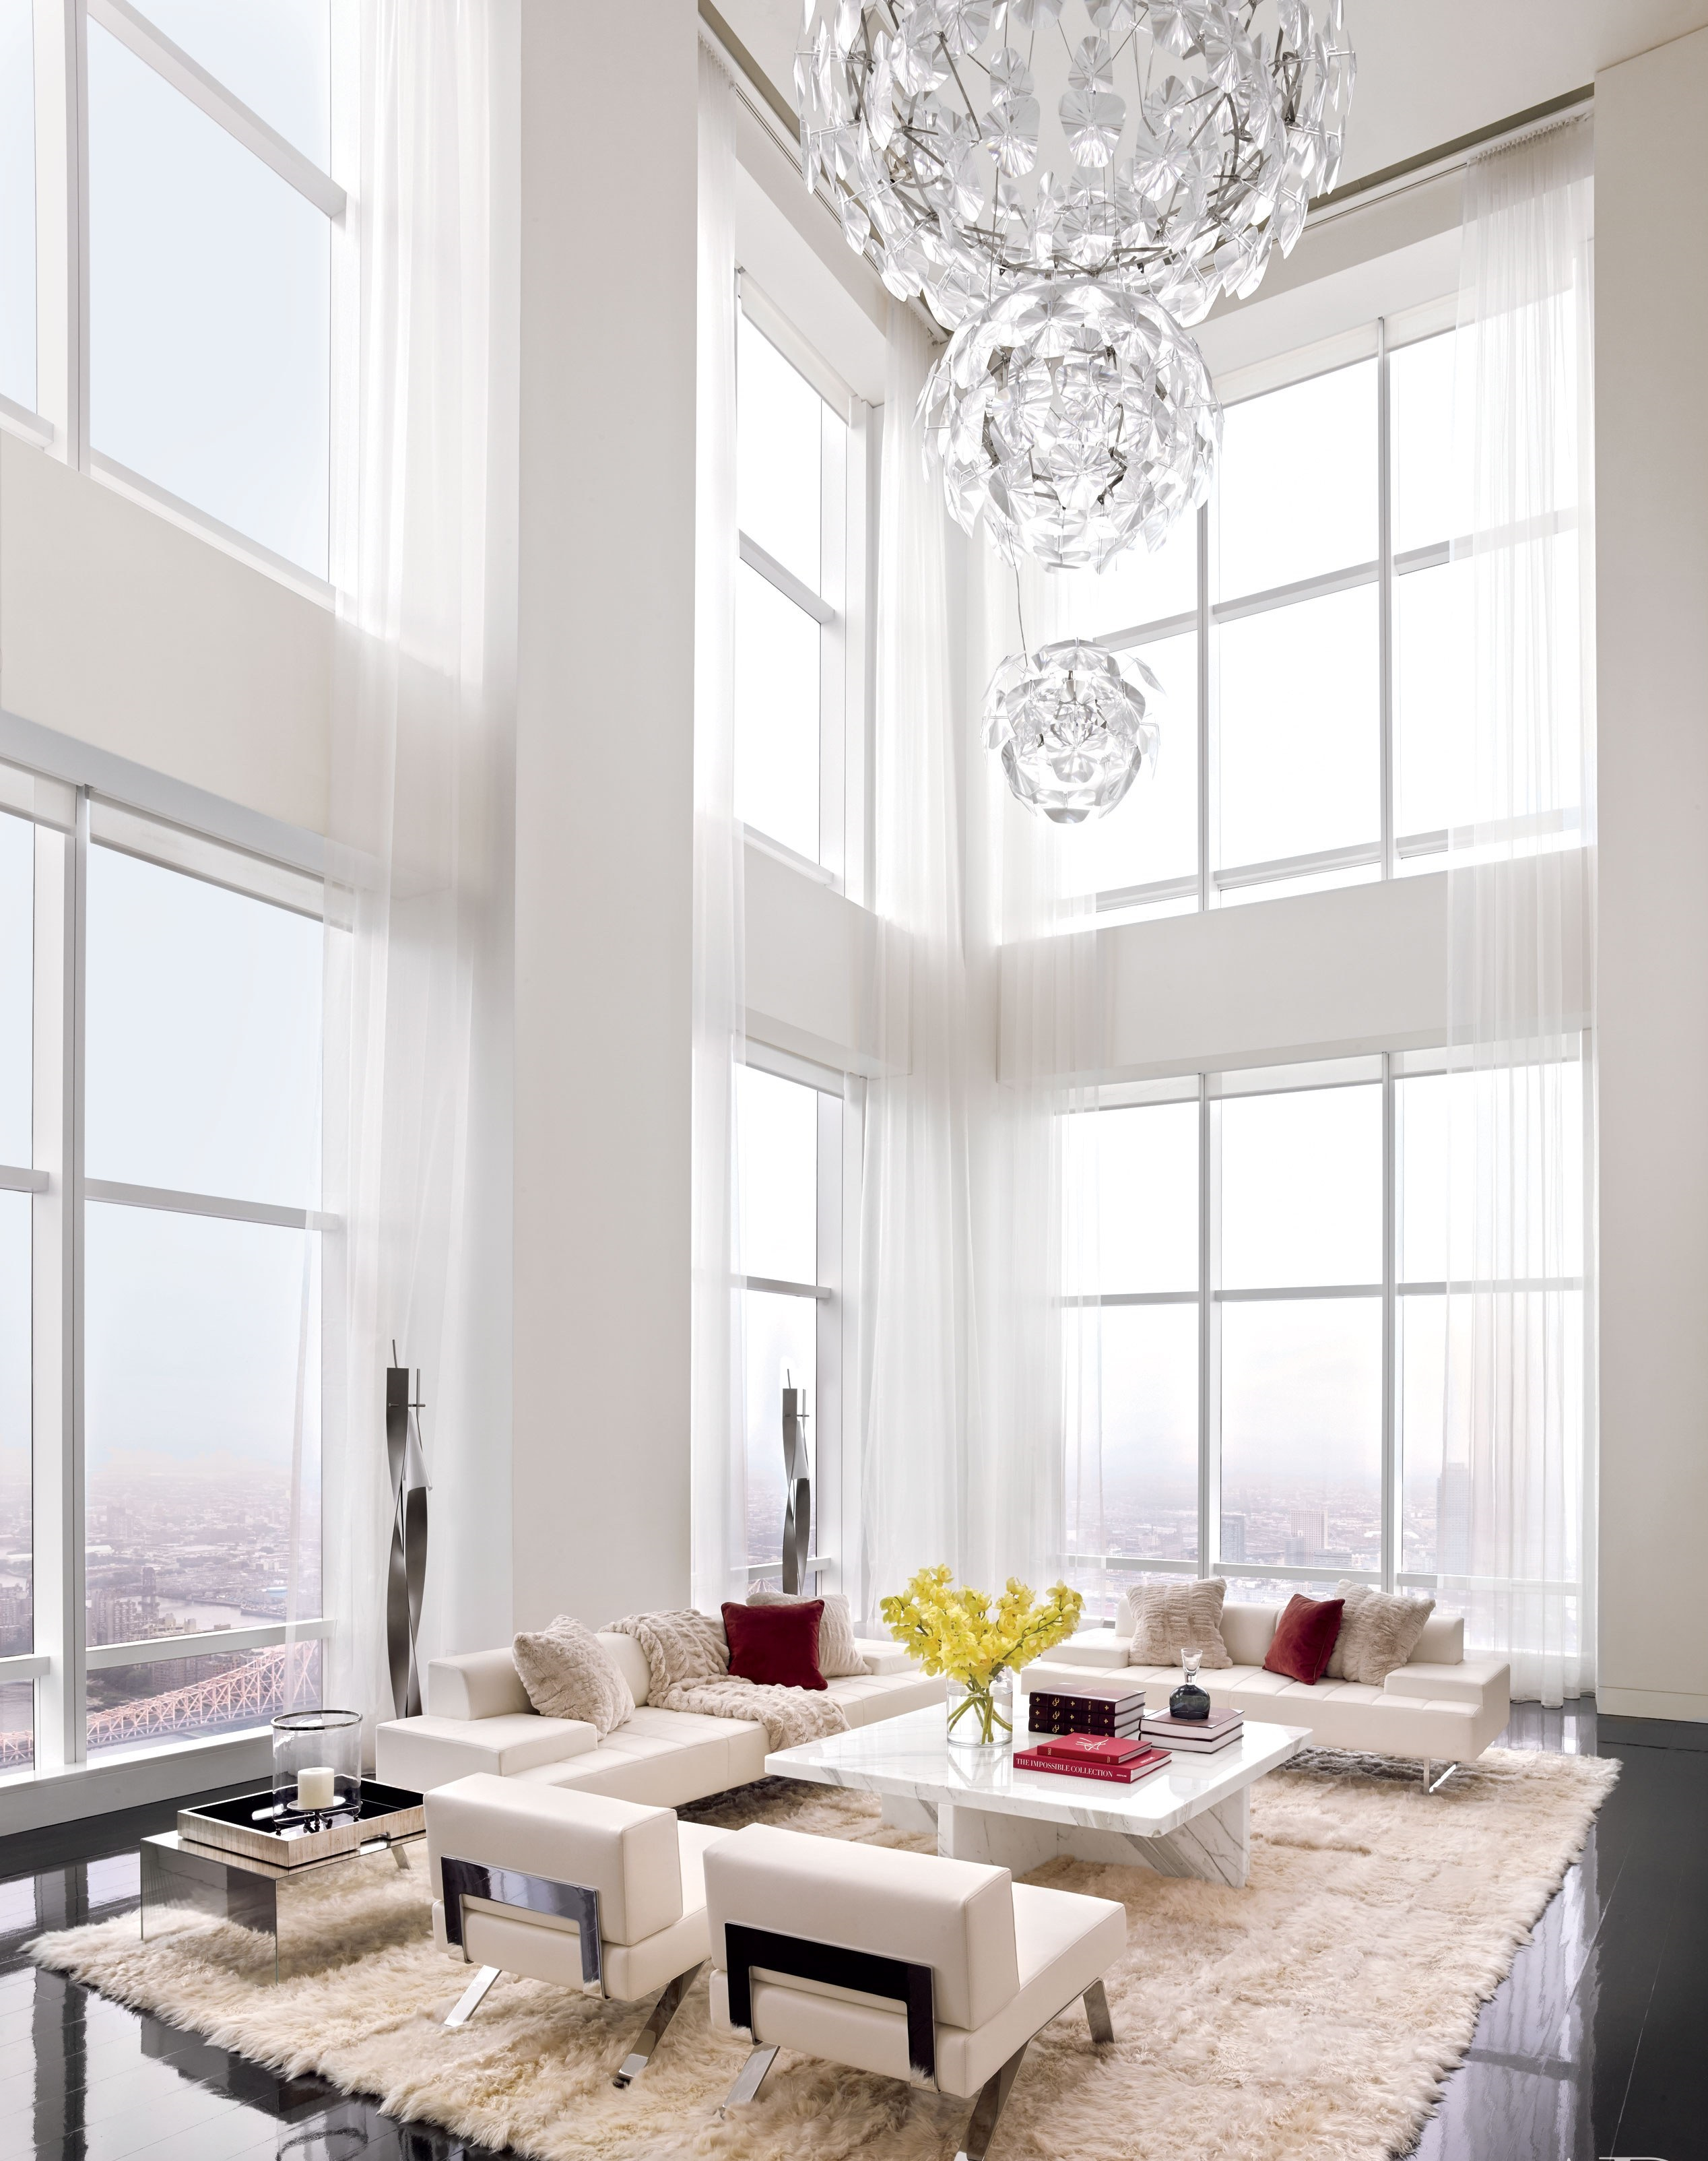 Top 8 Manhattan Dream Living Rooms to Inspire You Manhattan Dream Living Rooms Top 8 Manhattan Dream Living Rooms to Inspire You Top 10 Manhattan Dream Living Rooms to Inspire You5